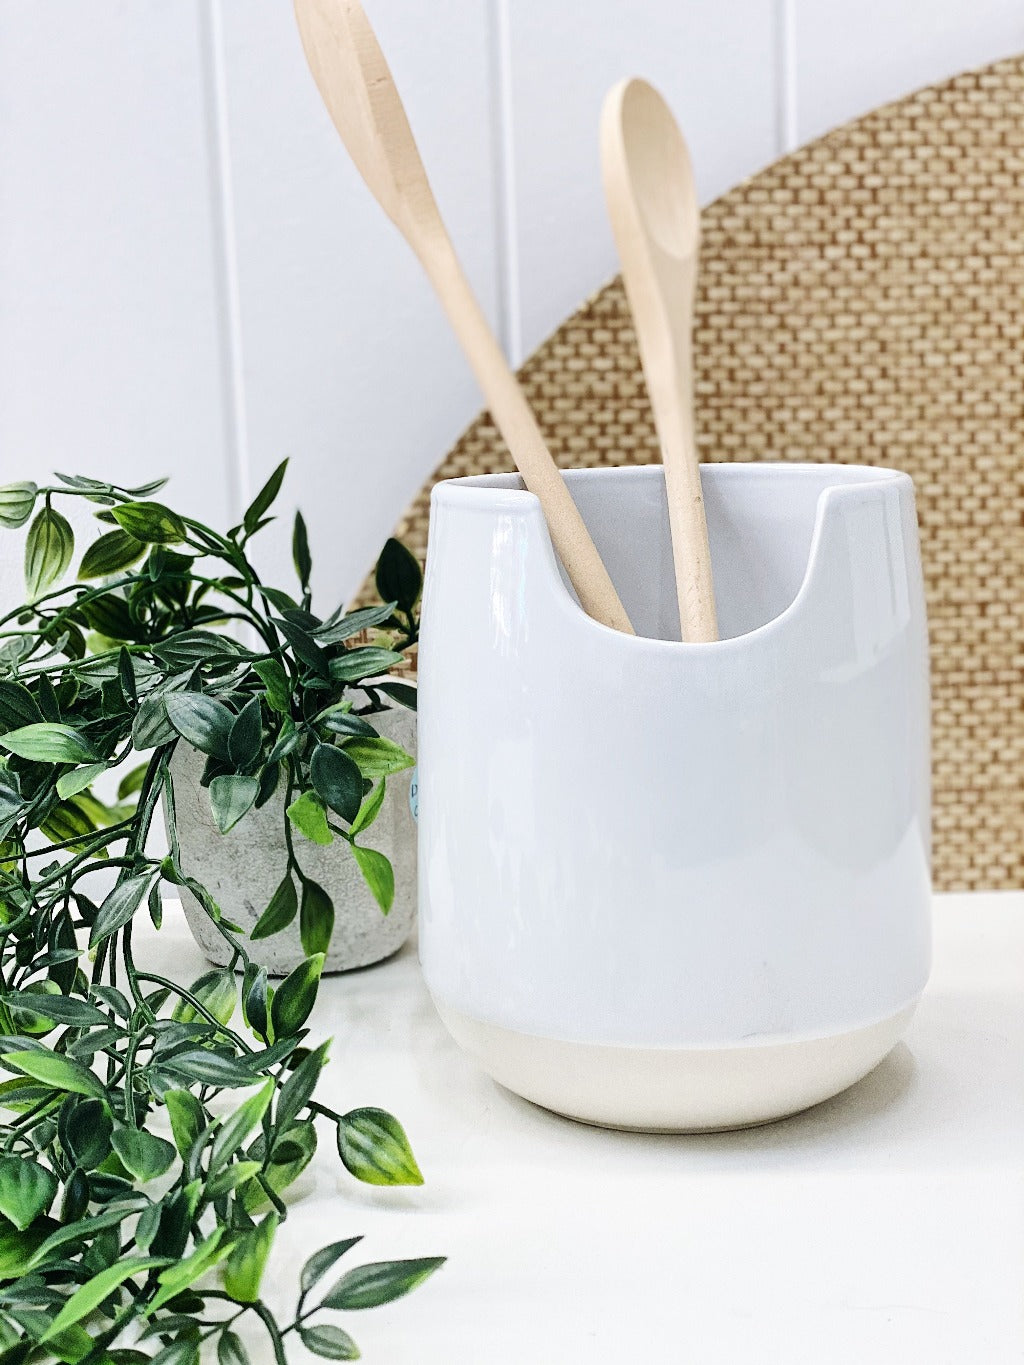 Beacon White Utensil Holder - Salt&Pepper - 13x15cm - crafted from fine-quality and long-lasting stoneware. Generously sized holder. Will keep your benchtop clean and organised. |Bliss Gifts & Homewares - Unit 8, 259 Princes Hwy Ulladulla - Shop Online & In store - 0427795959, 44541523 - Australia wide shipping